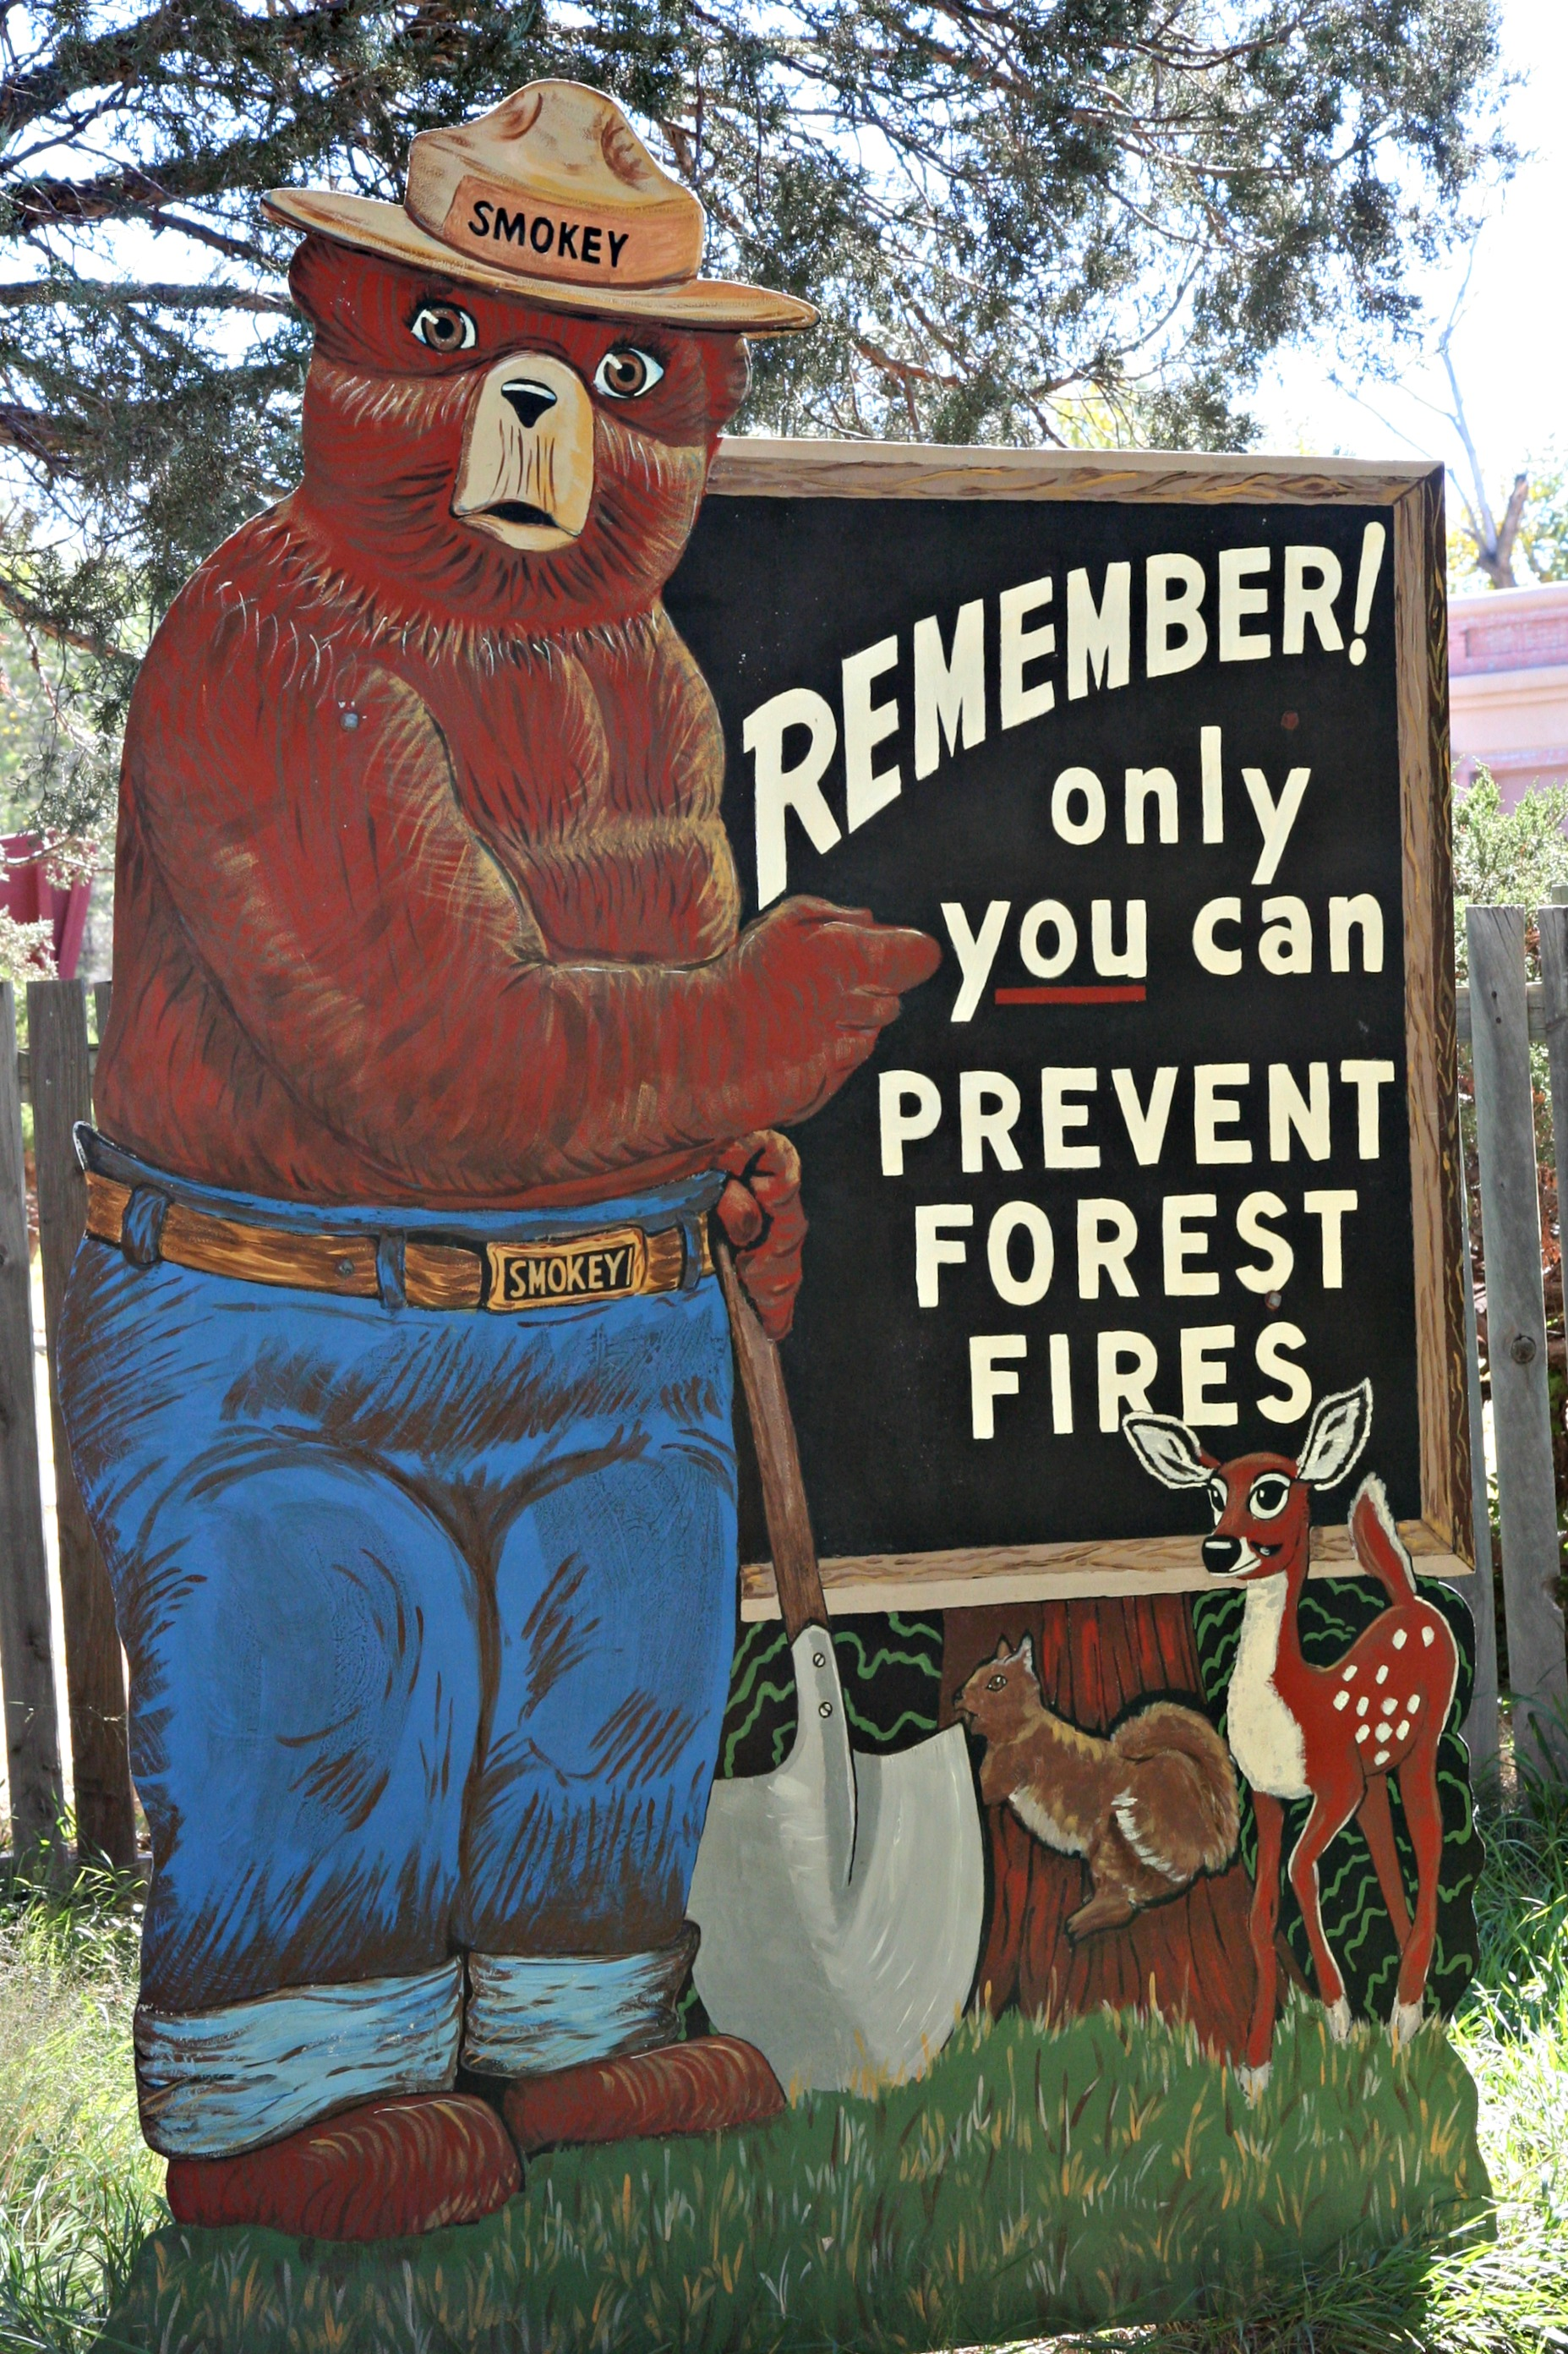 gmmh nhs likewise 224 Smokey Bear likewise Stock Illustration Global Warming Sign Earth Fire Illustration Image60568167 furthermore Indianapolis fire department likewise 72679 Hiv And Aids Slogans. on fire prevention symbol